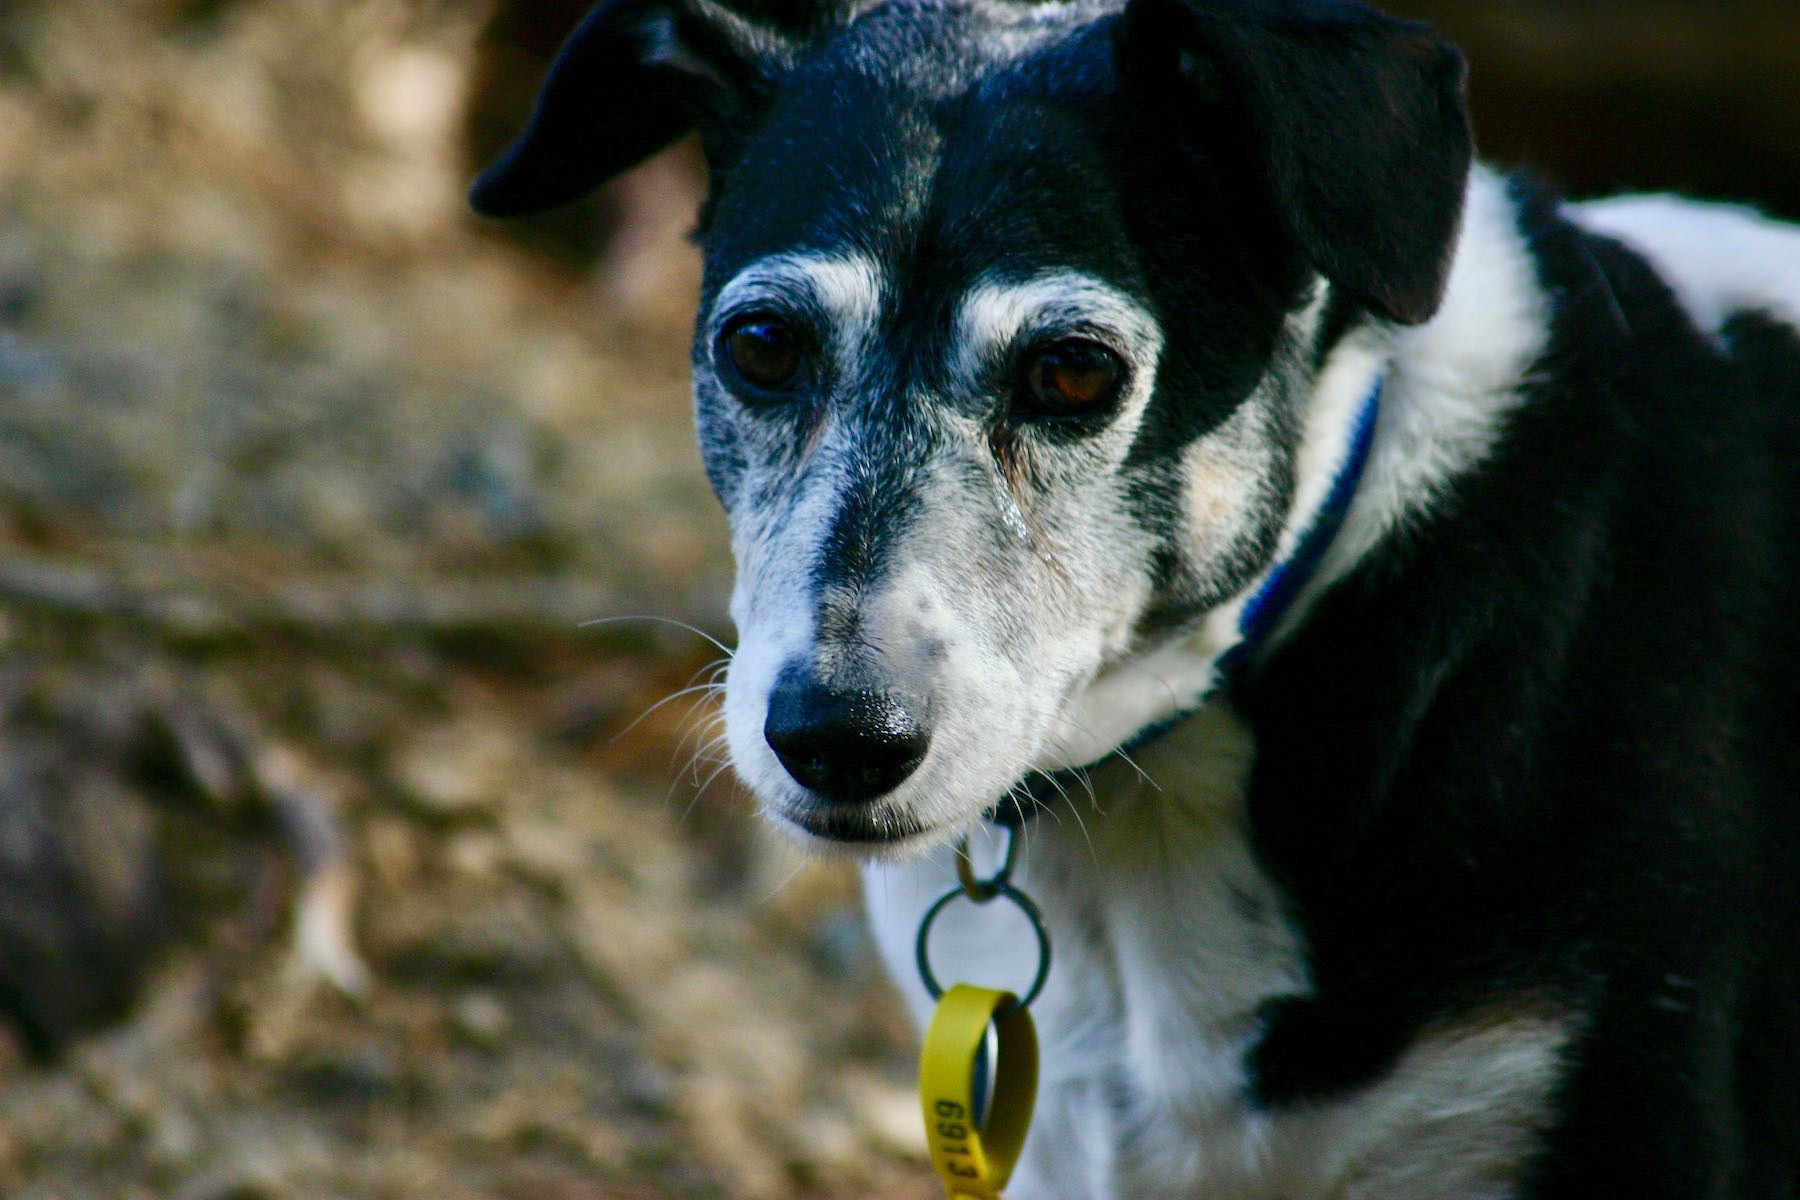 Small black and white dog looking at the camera.